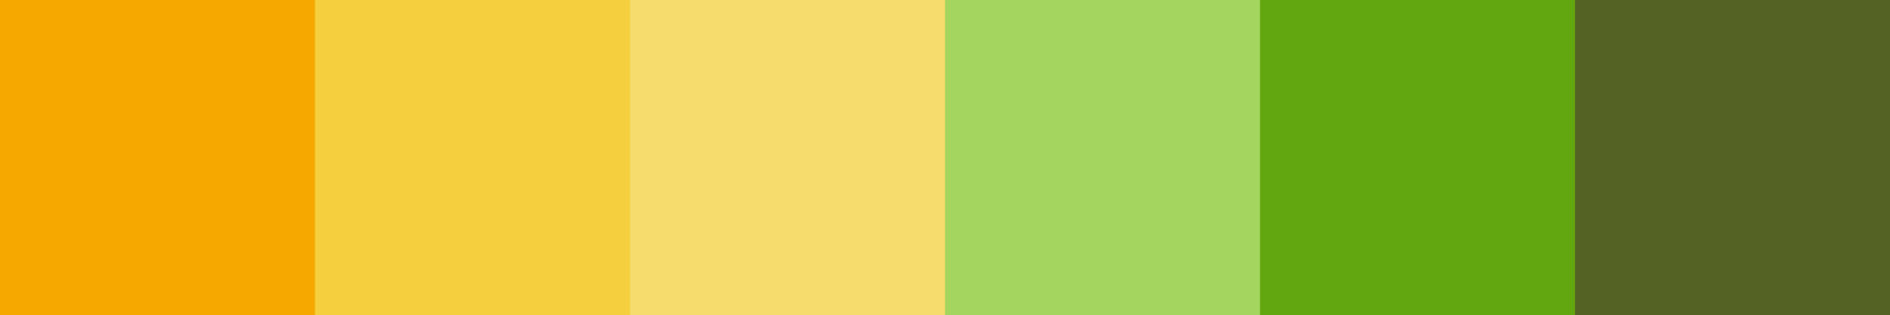 color-palette-look-the-seeds-you-plant